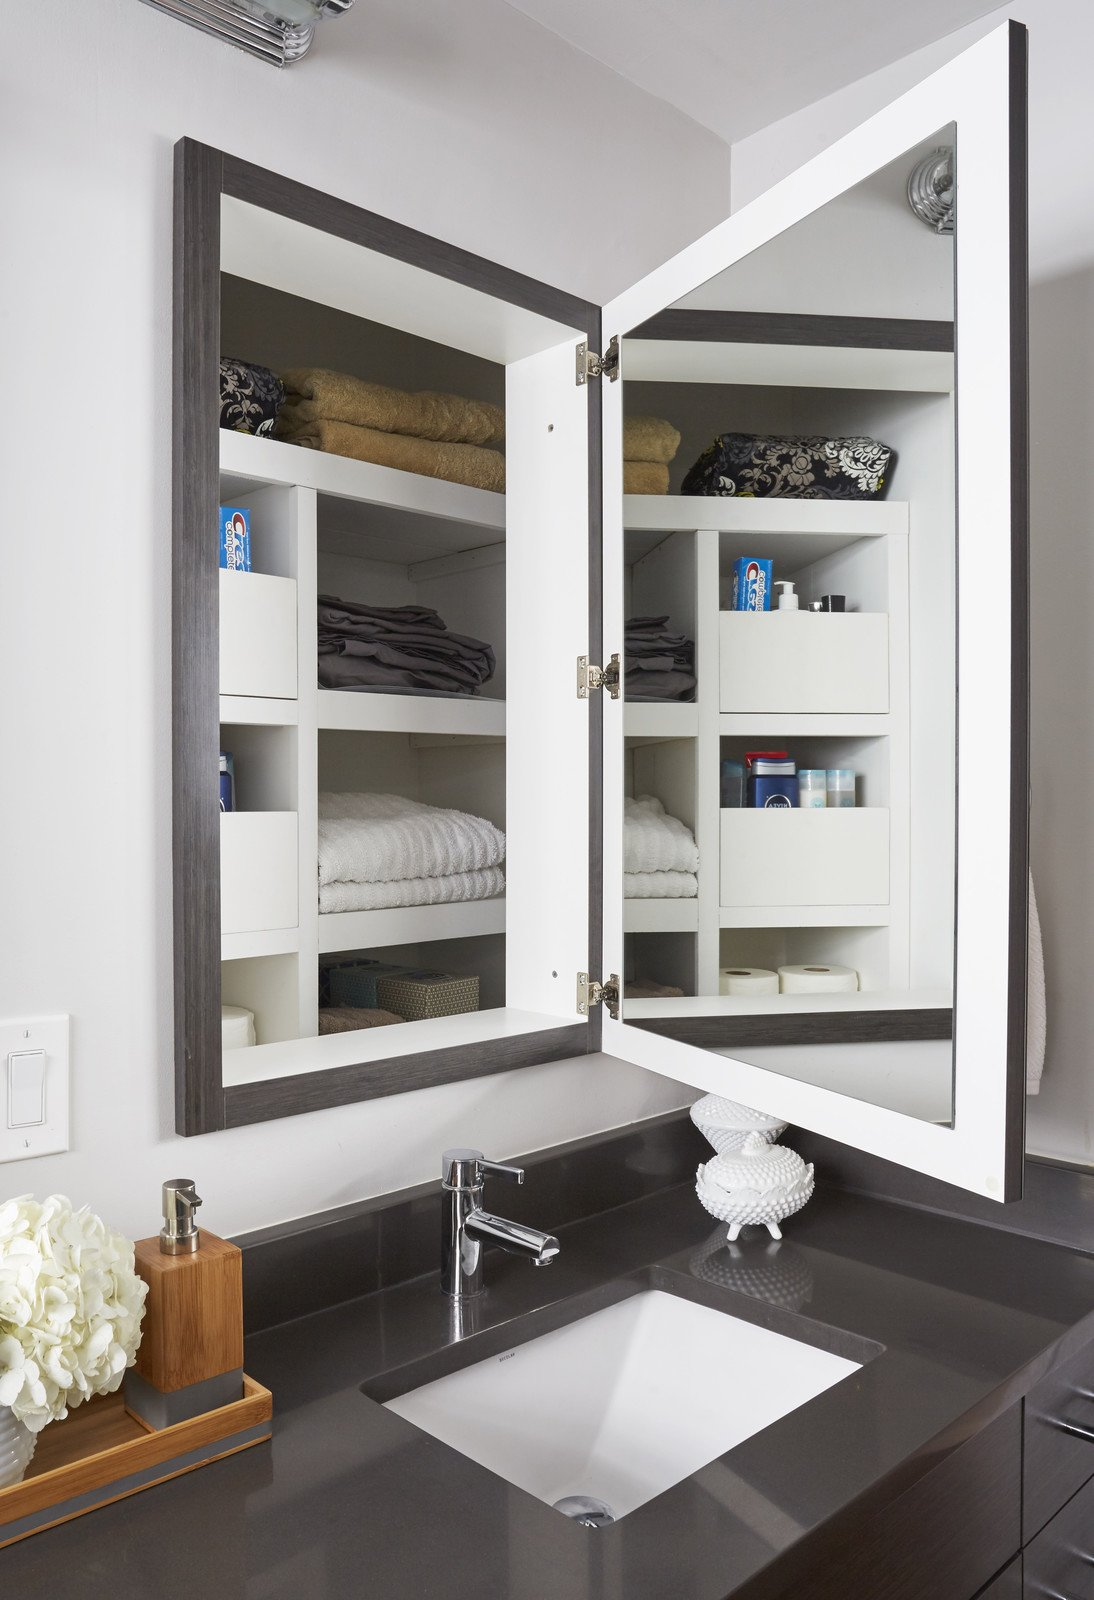 Photo caption: This renovation preserved the depth behind the medicine cabinets for linen storage. Tagged: Storage Room and Cabinet Storage Type.  Photo 10 of 10 in 10 Clever Ways to Sneak Storage Into Your Renovation